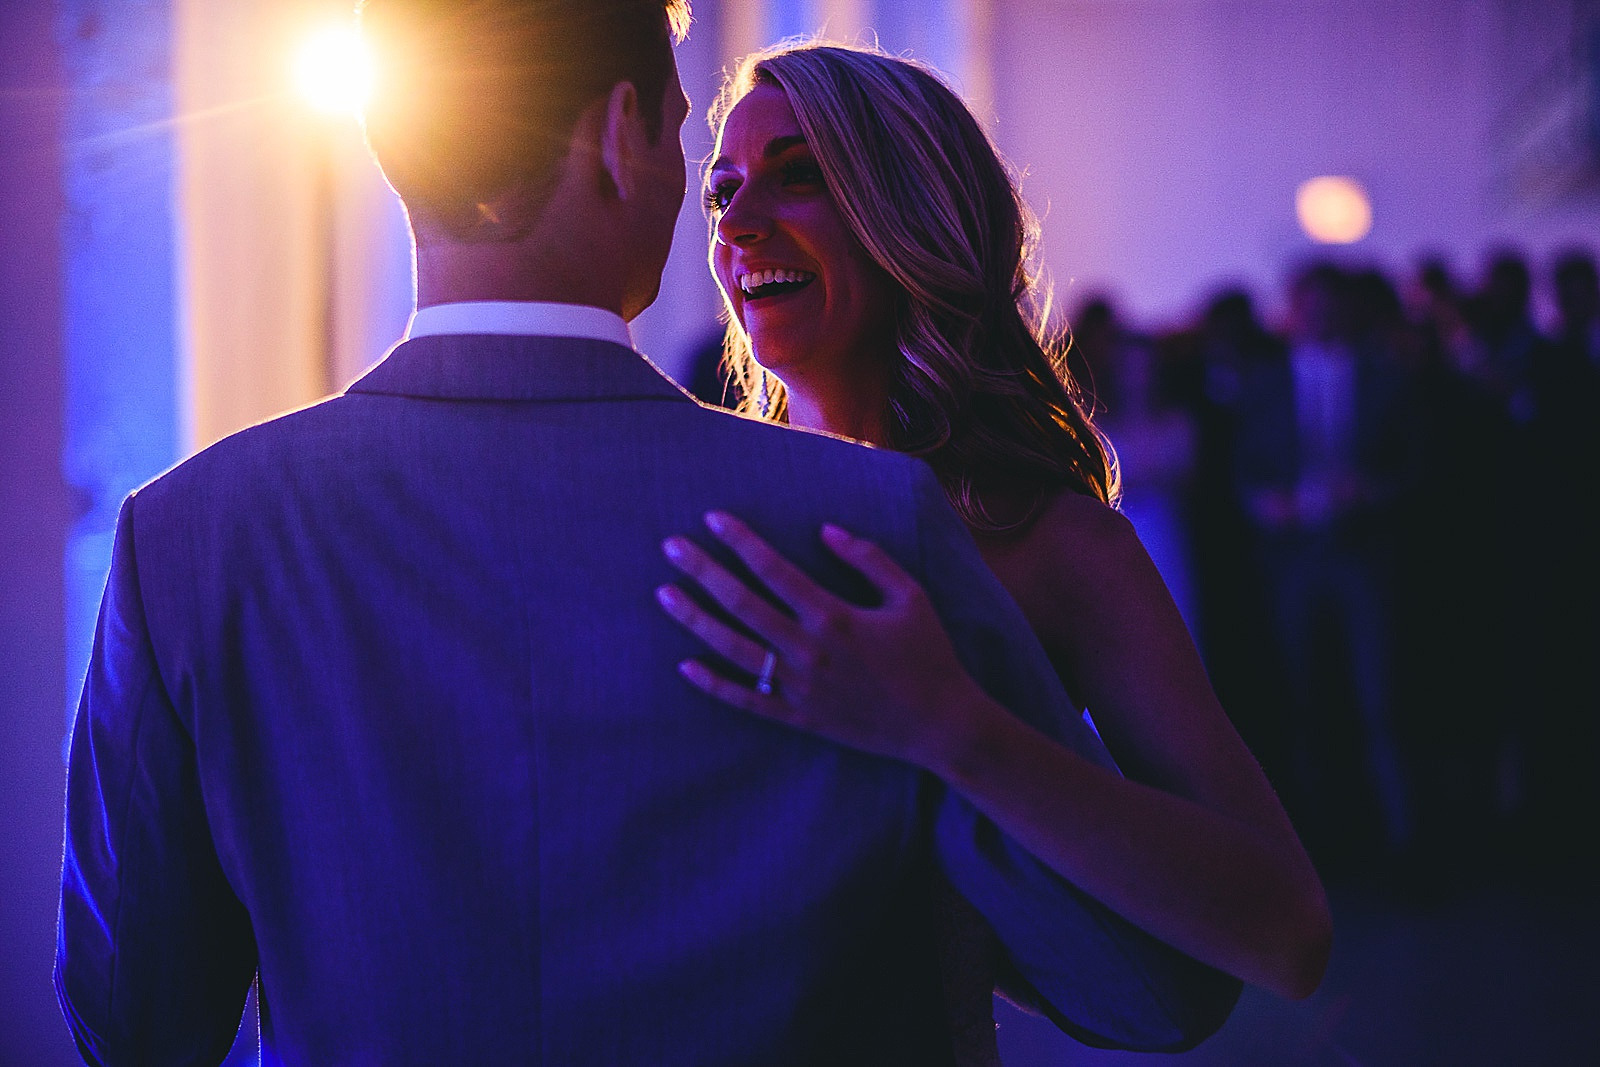 49 creative wedding photos at chez first dance - Audrey + Jake's Beautiful Chicago Wedding at Chez